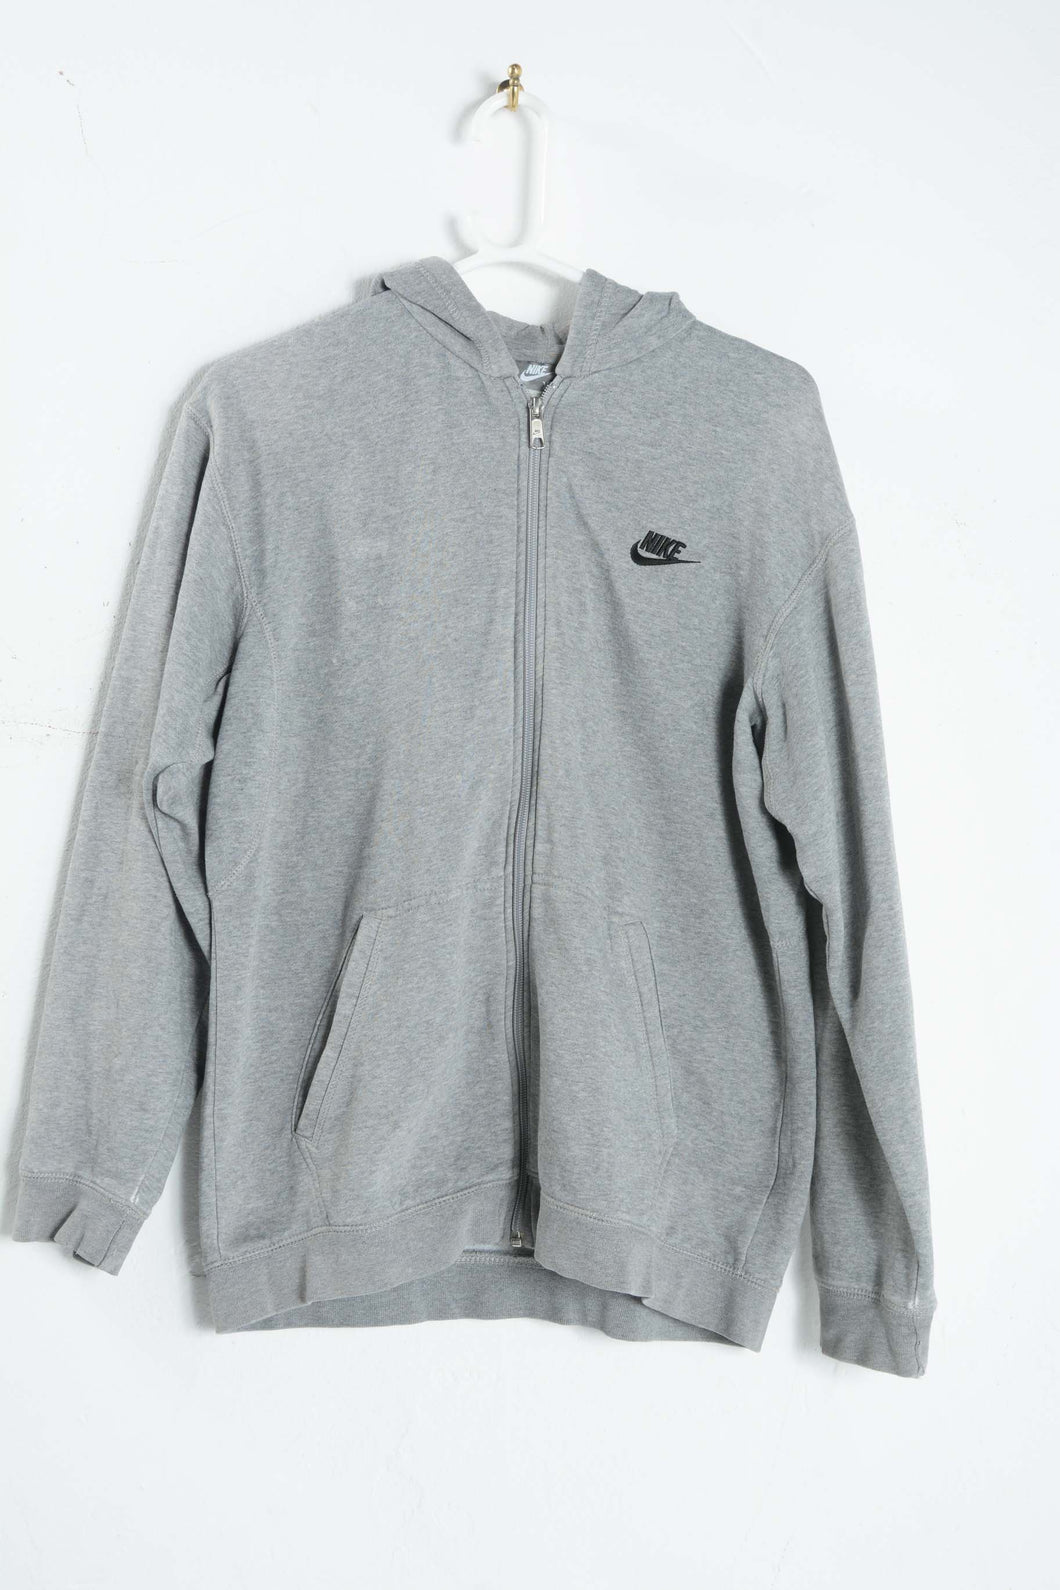 Vintage Nike Zip up Hoodie in Grey with Logo - M